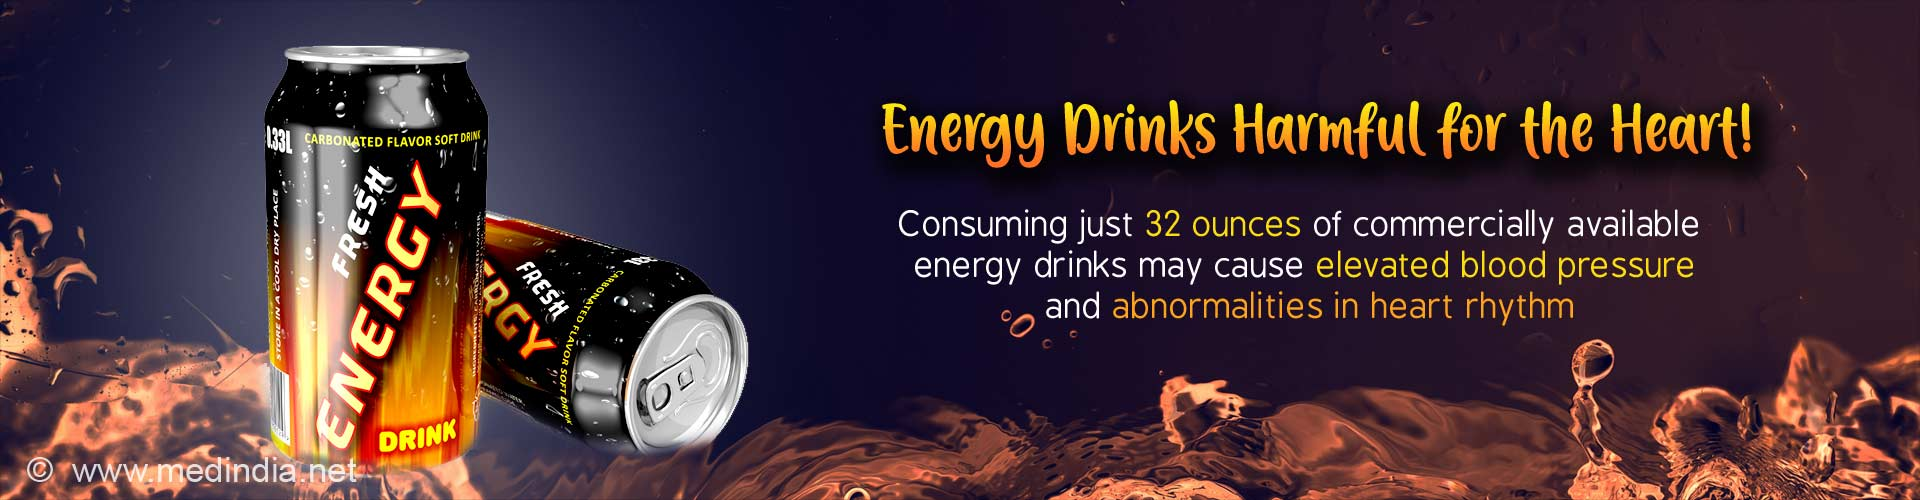 Energy drinks harmful for the heart. Consuming just 32 ounces of commercially available energy drinks may cause elevated blood pressure and abnormalities in heart rhythm.